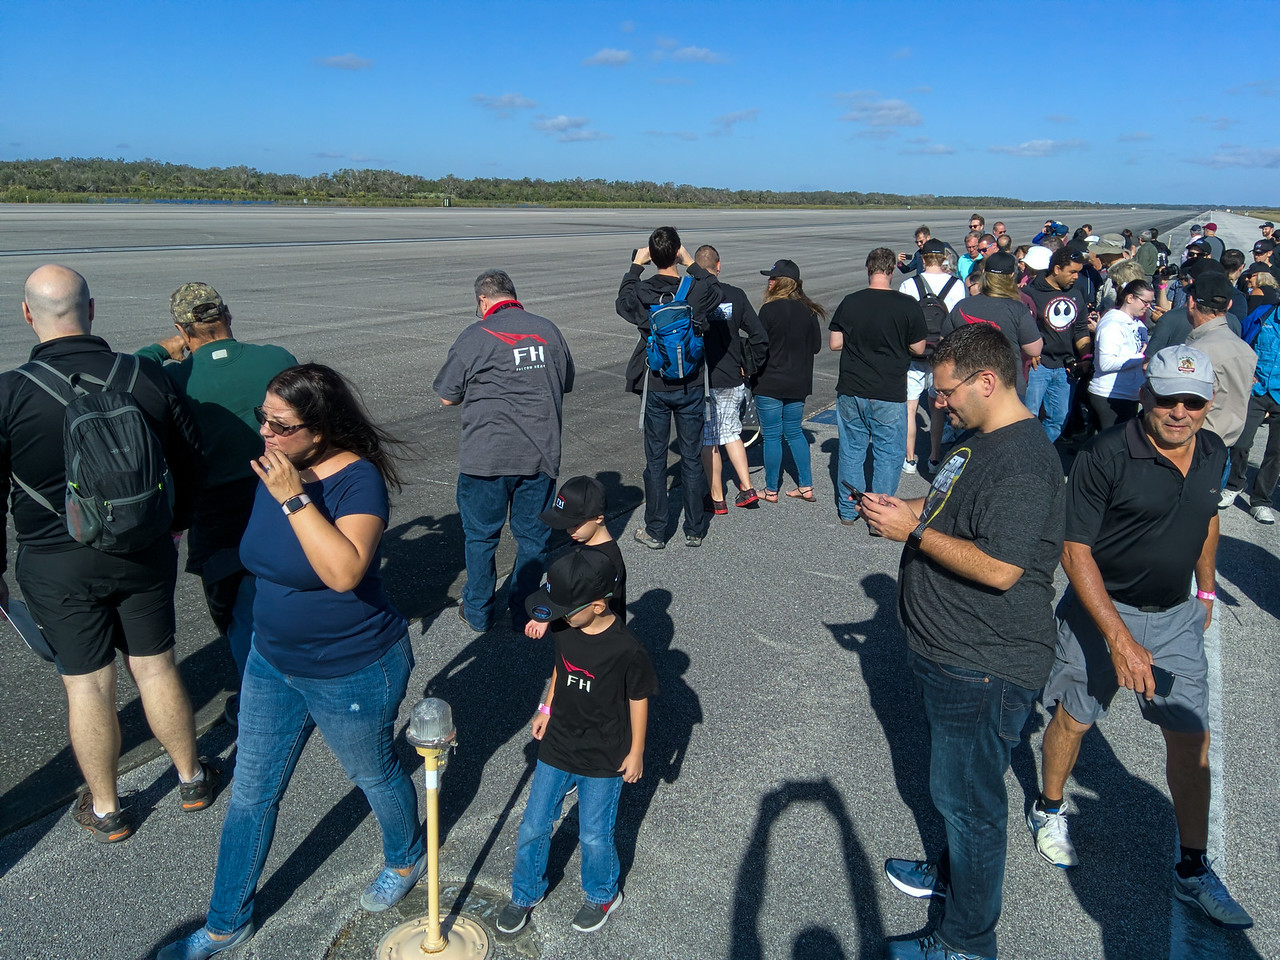 Letting the tourists off of the busses for a walk on the runway.